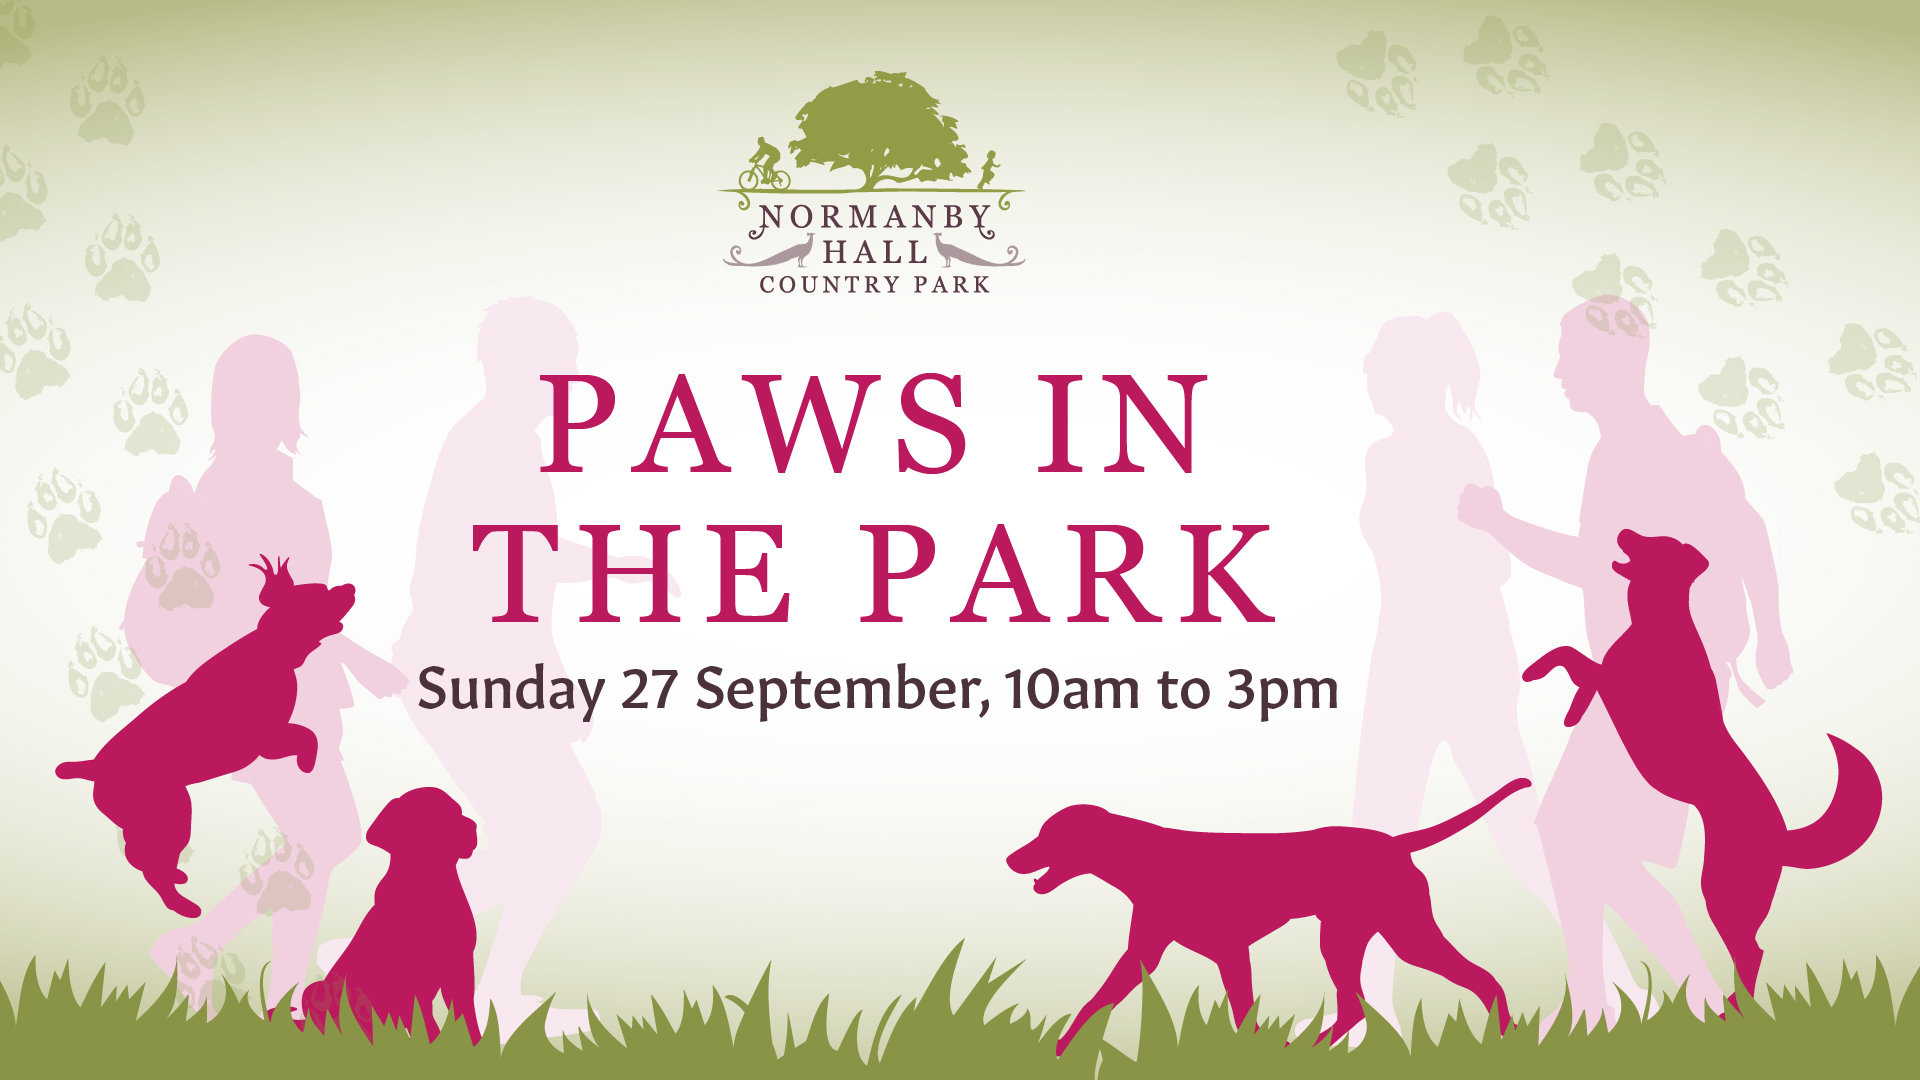 photo of the leaflet for Paws in the Park